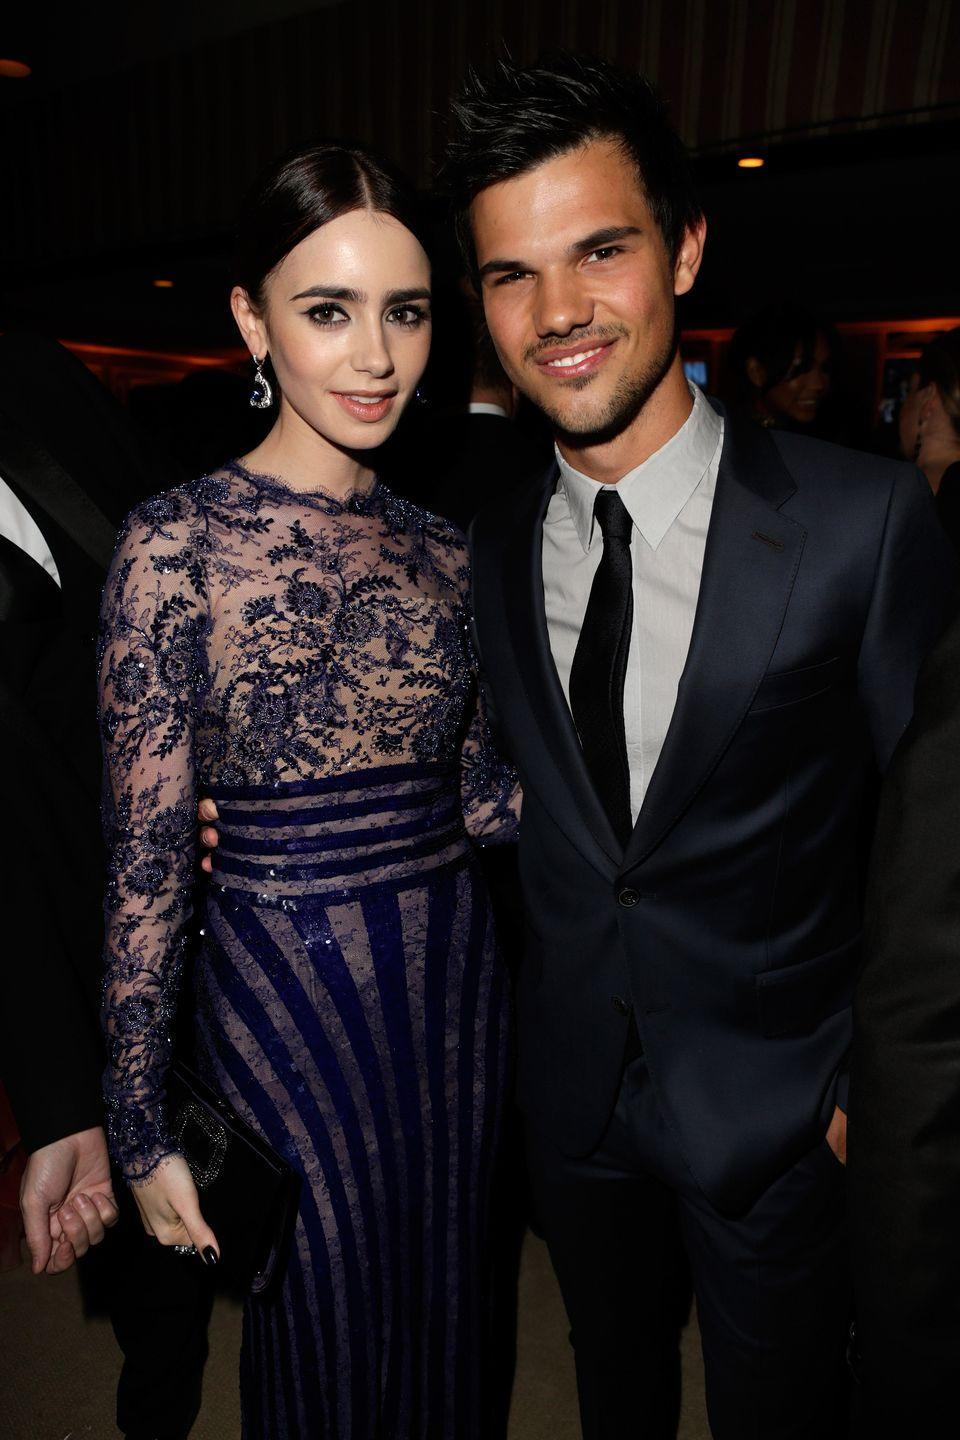 <p>Rumors of Collins and Lautner dating began to circulate as the co-stars filmed the movie <em>Abduction</em>. However, the relationship ended just months before they were to set to embark upon a press tour ahead of the <em>Abduction</em> premiere.</p>